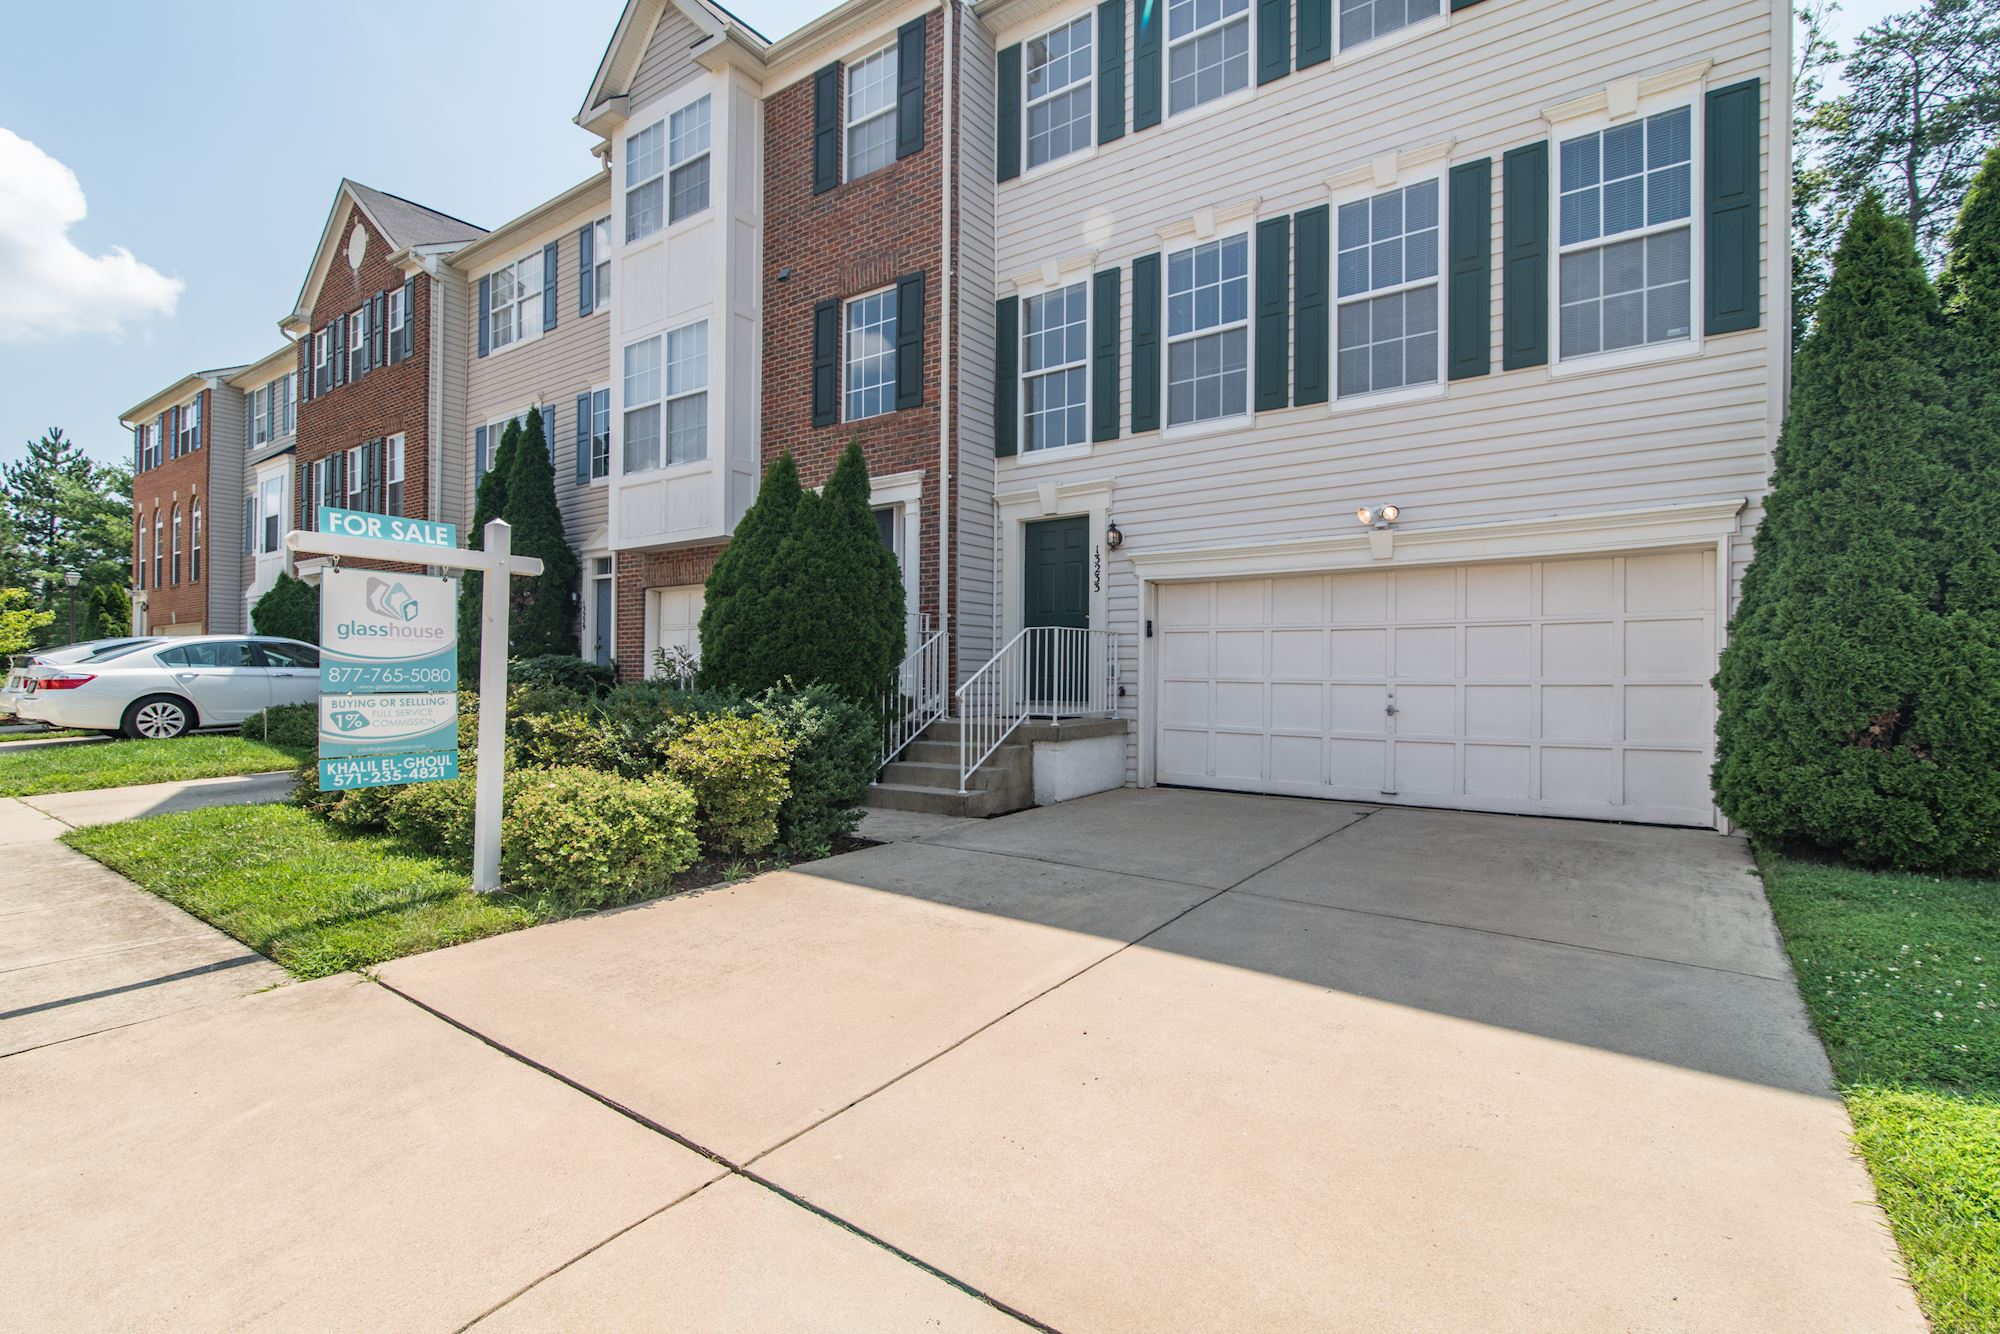 SOLD: Lovely End Unit Townhouse in Herndon